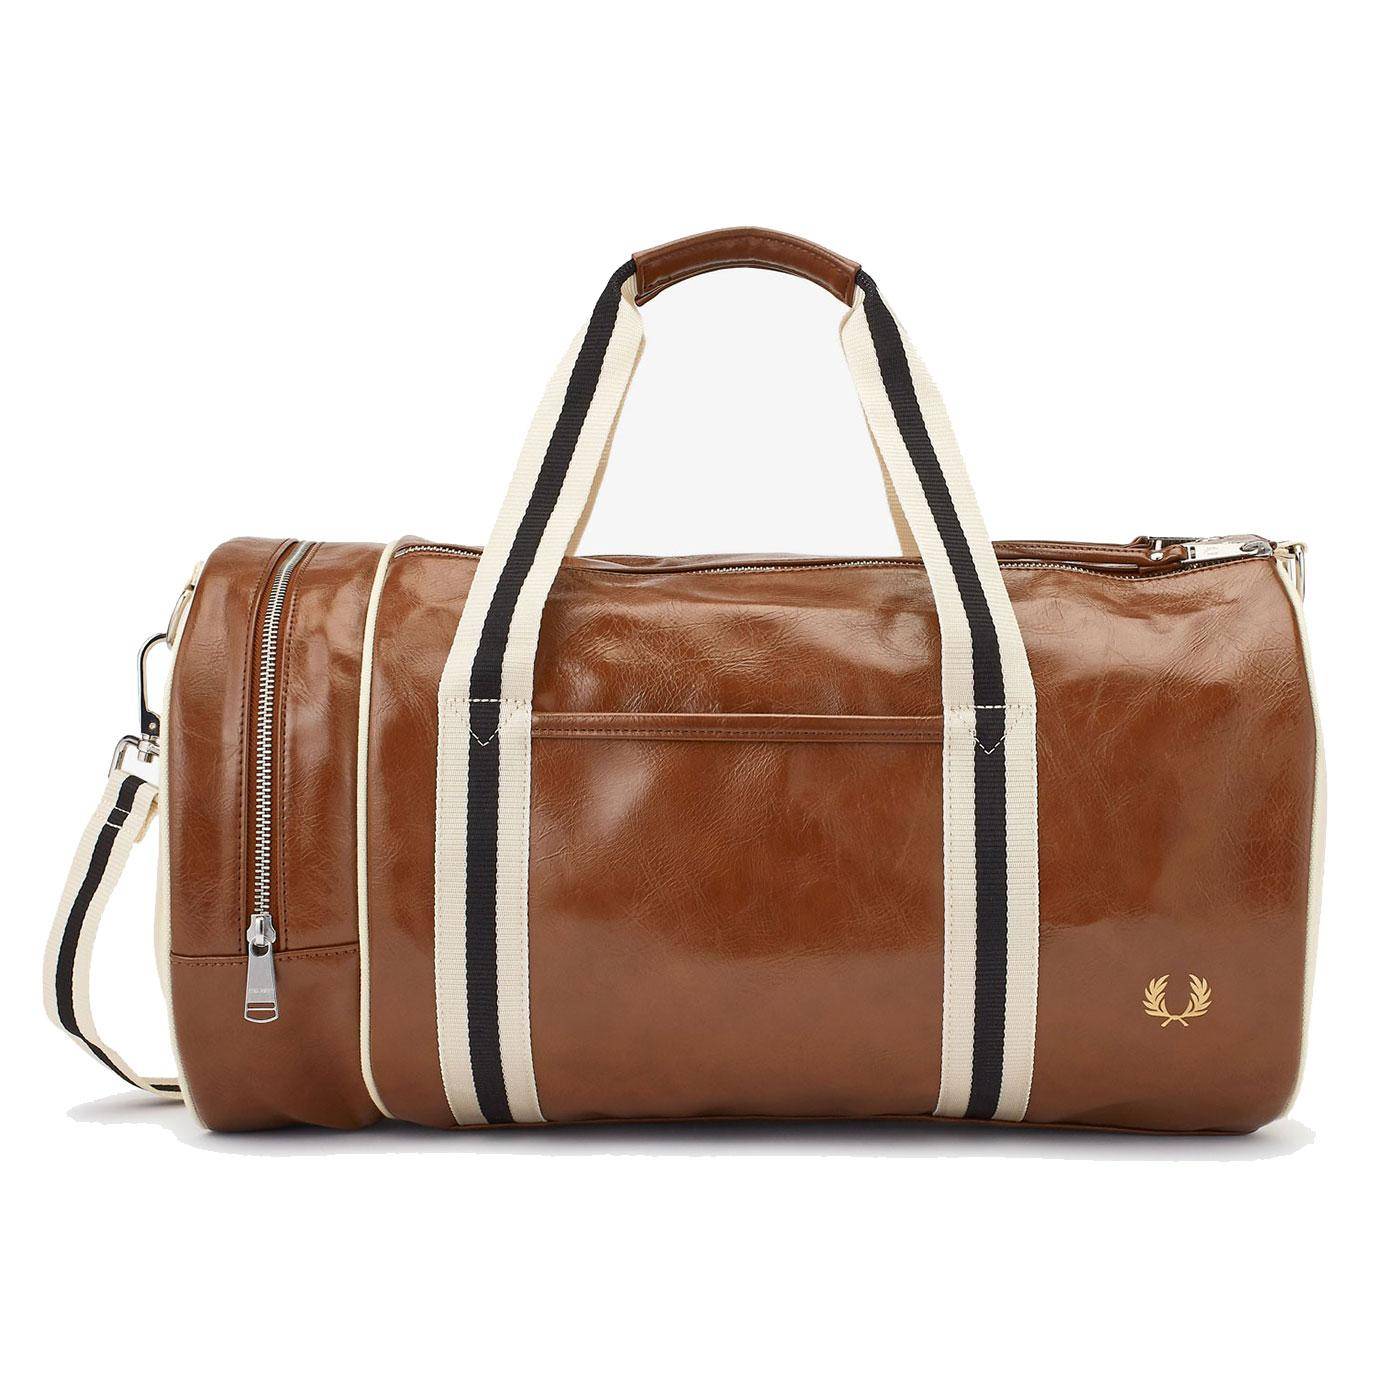 FRED PERRY Retro Mod Classic Barrel Bag - Tan/Ecru